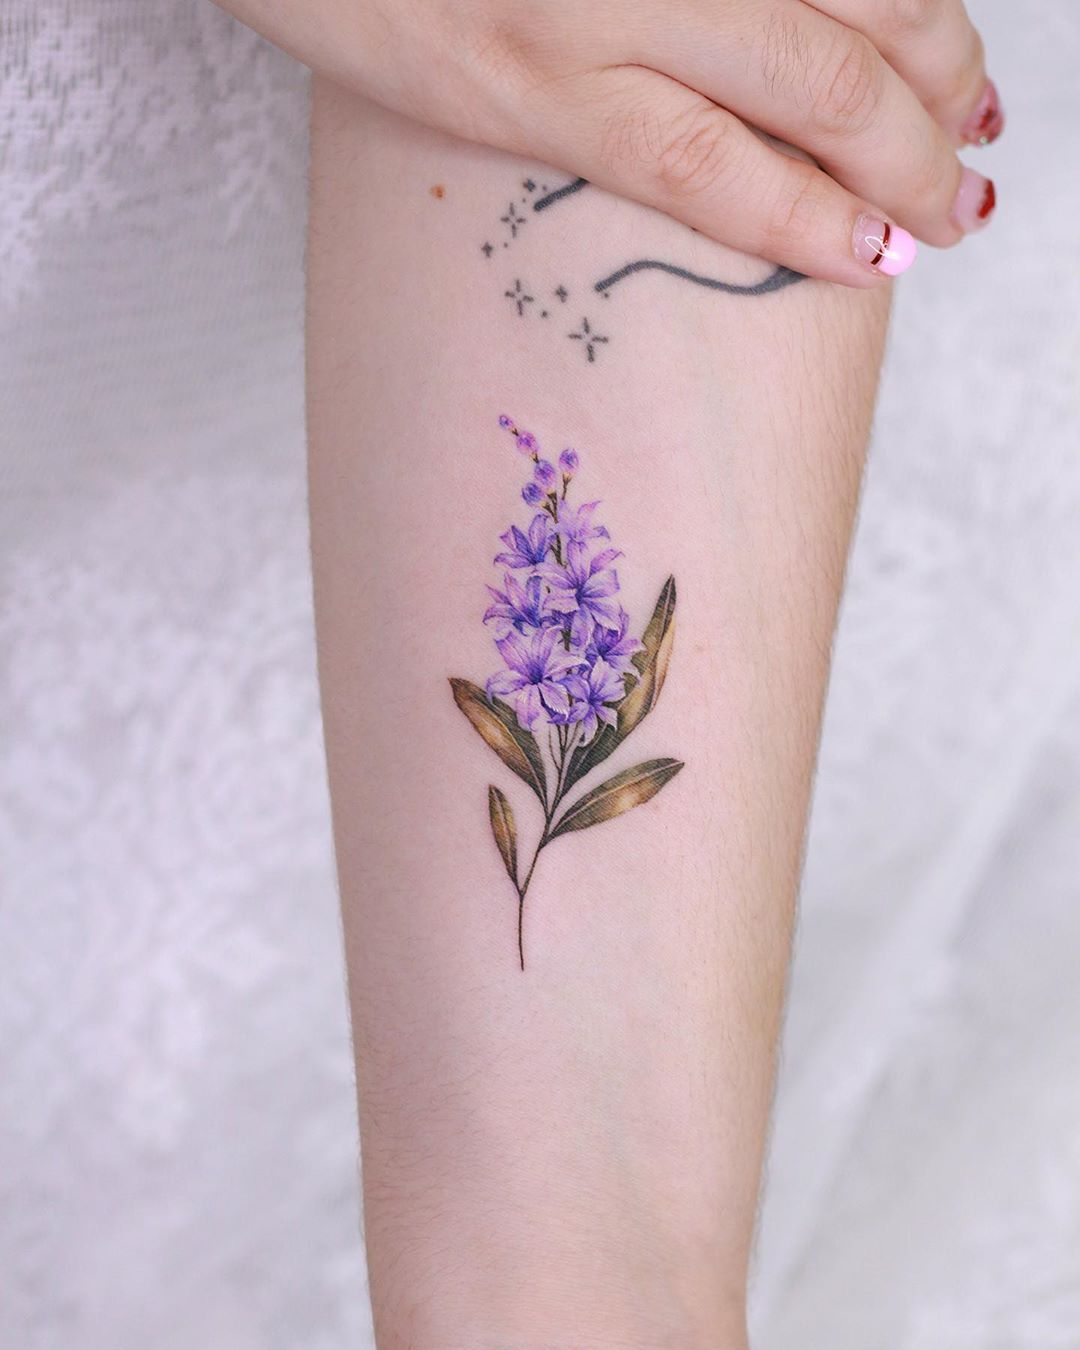 16 Delicate Flower Tattoos Just In Time For Your New Spring Ink Delicate Flower Tattoo Cute Ankle Tattoos Tattoos